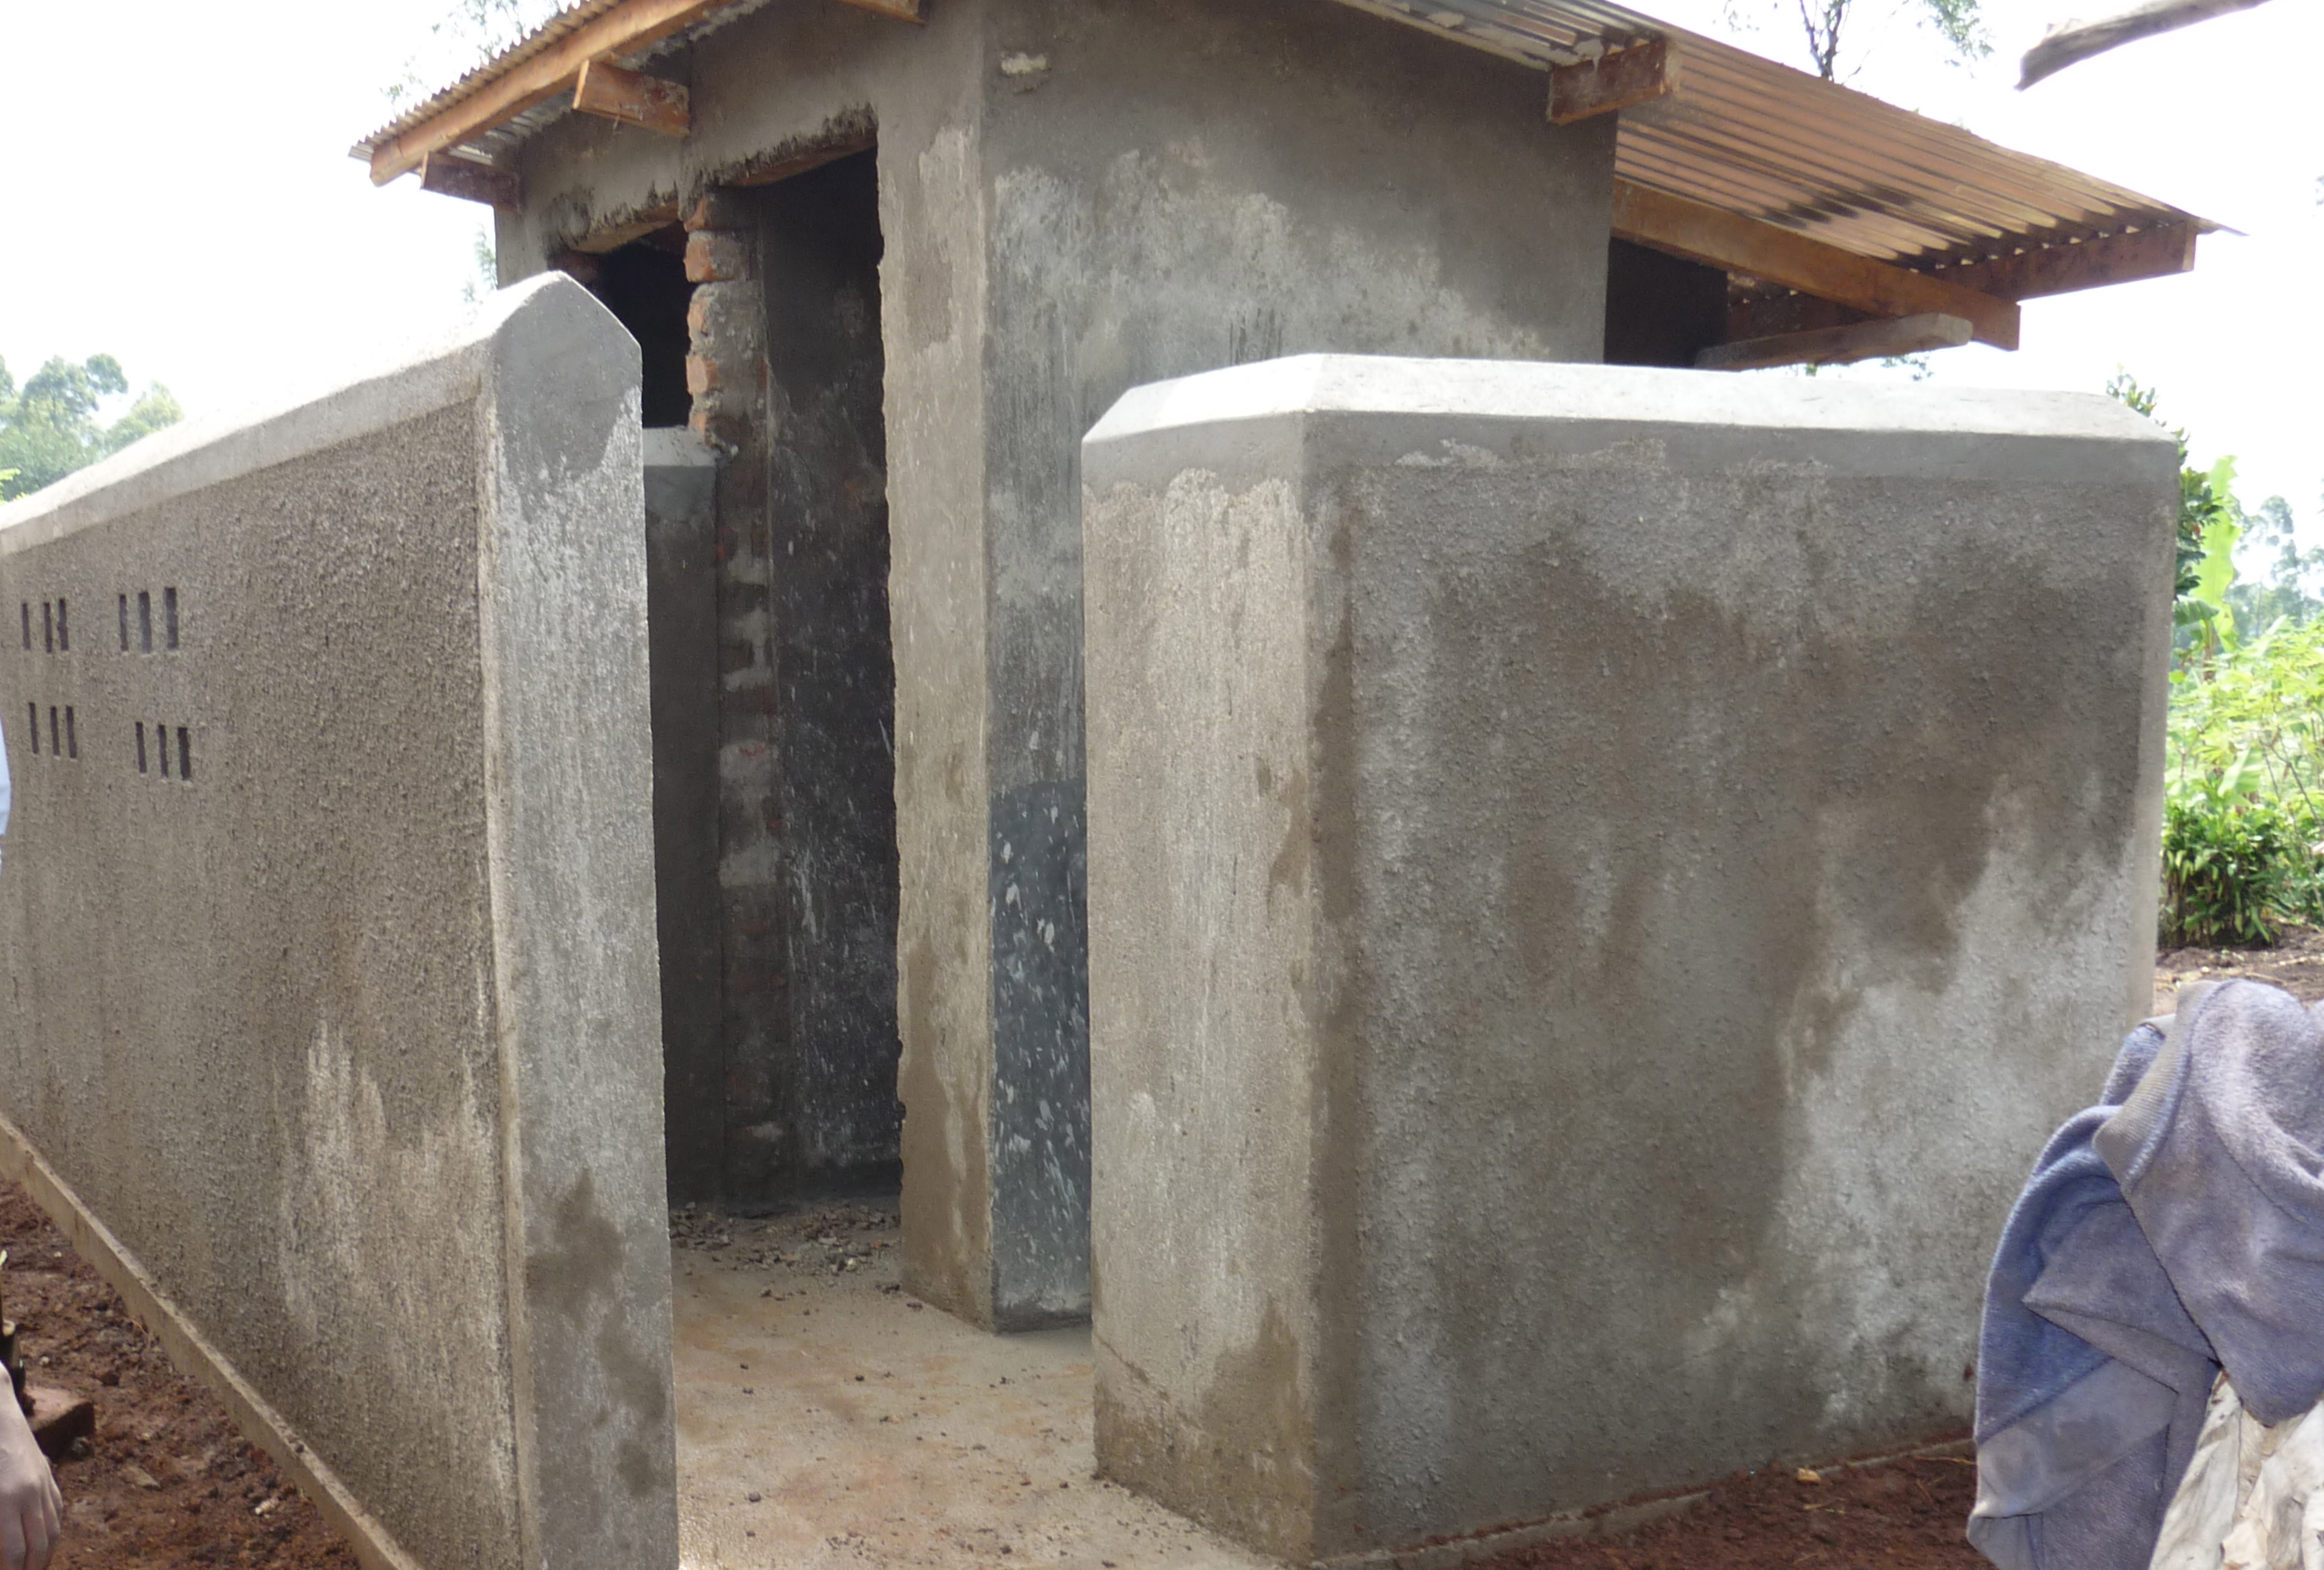 Pit Toilets Construction : Bricks and beds project love is the answer lita help